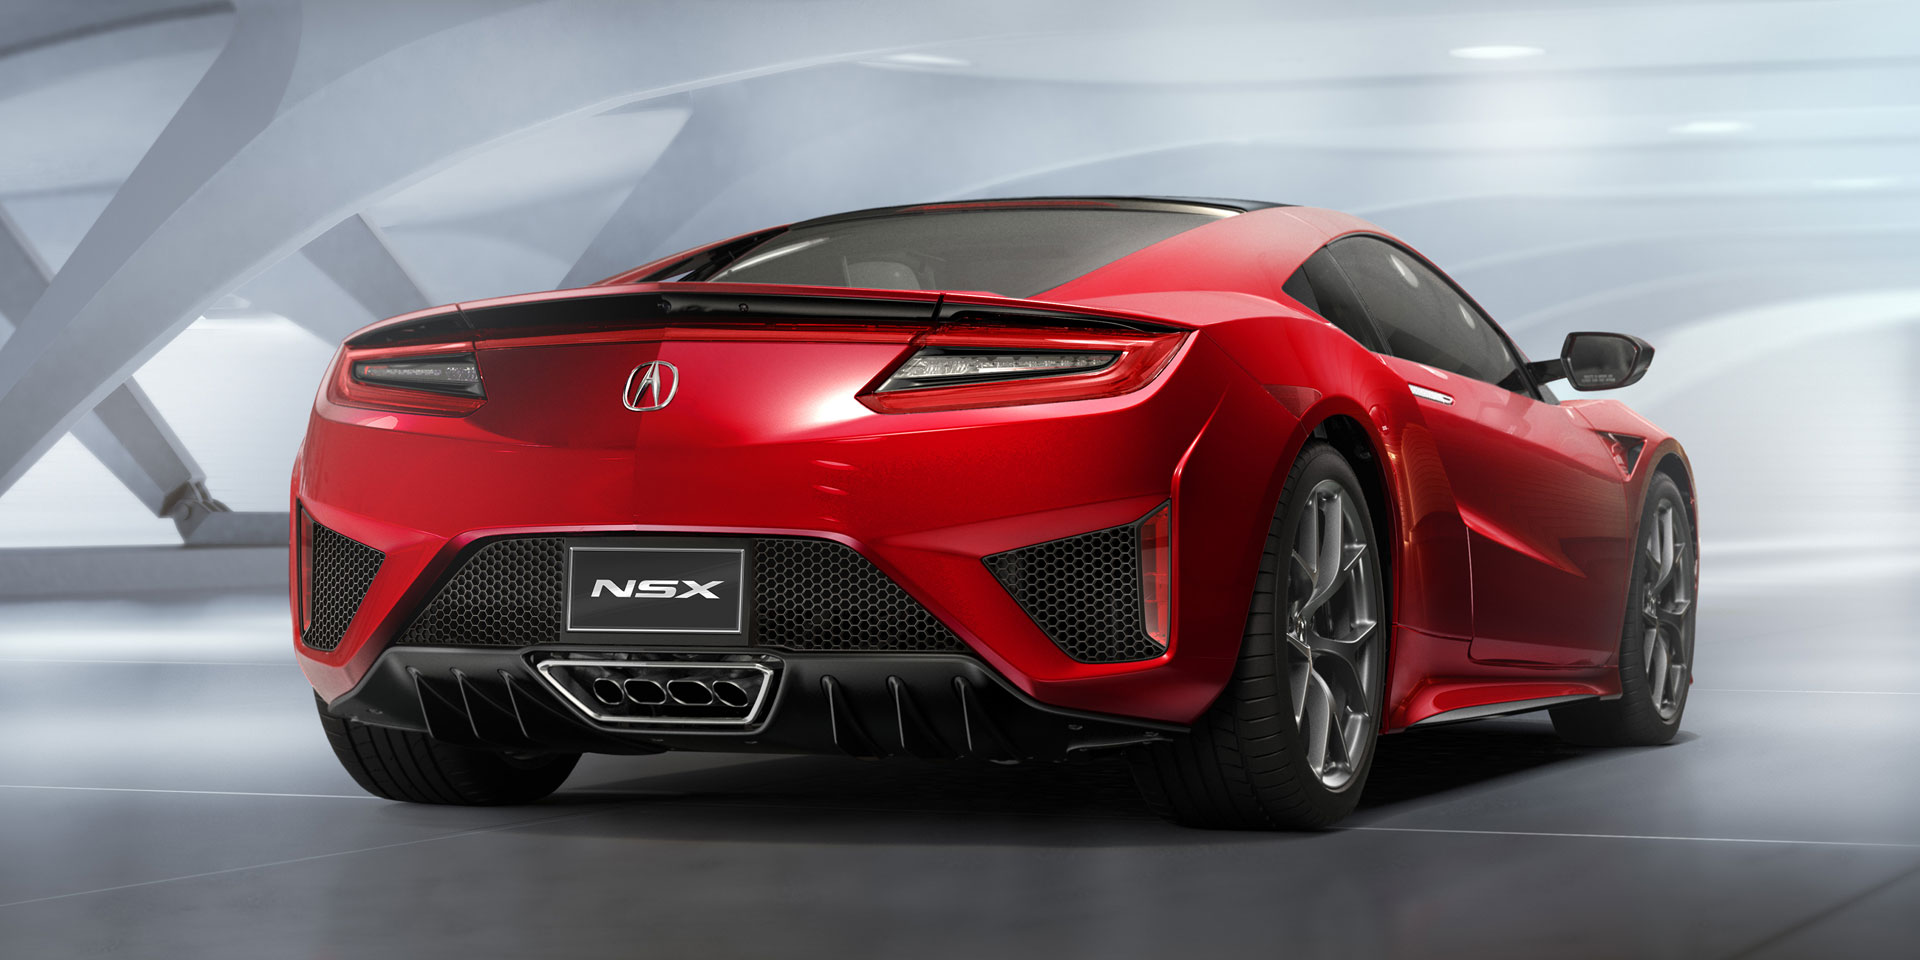 Superior 2016 ACURA NSX: Super Cars From Around The Globe Are Must Sees At The  Chicago Auto Show, And That Includes The 2016 Acura NSX At The Upcoming  108th Annual ... Pictures Gallery